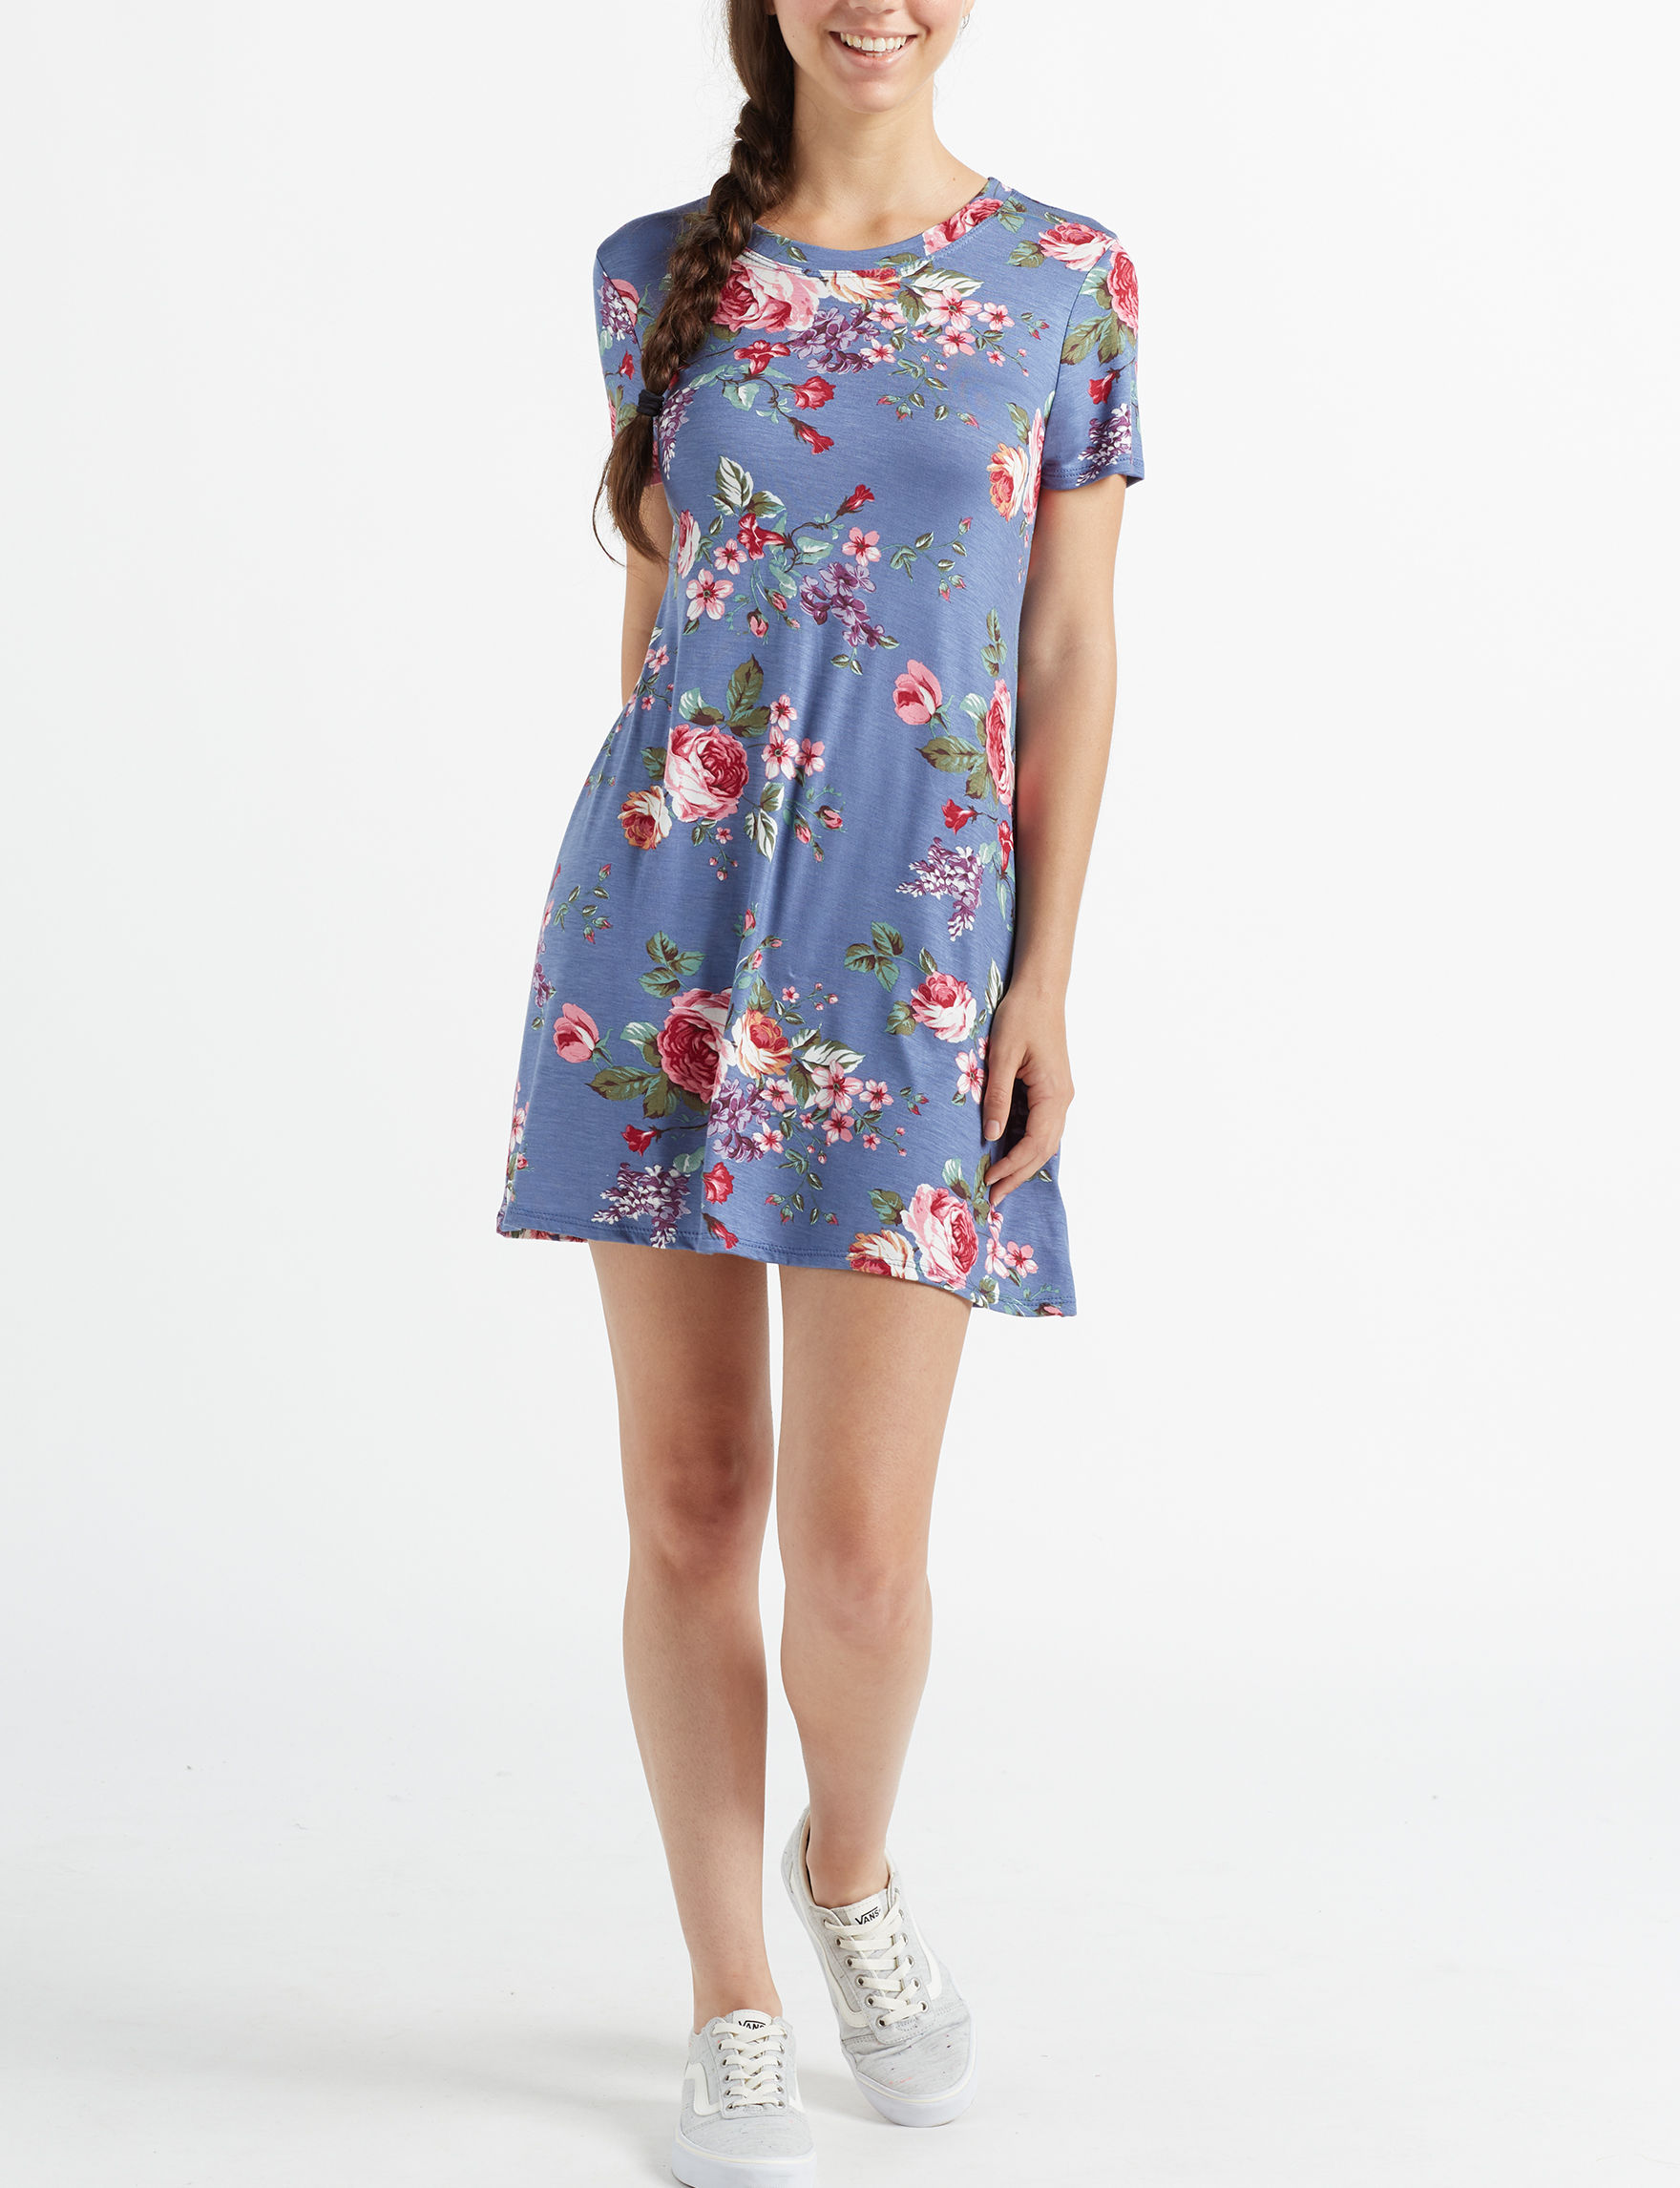 Poof Blue Everyday & Casual Shift Dresses